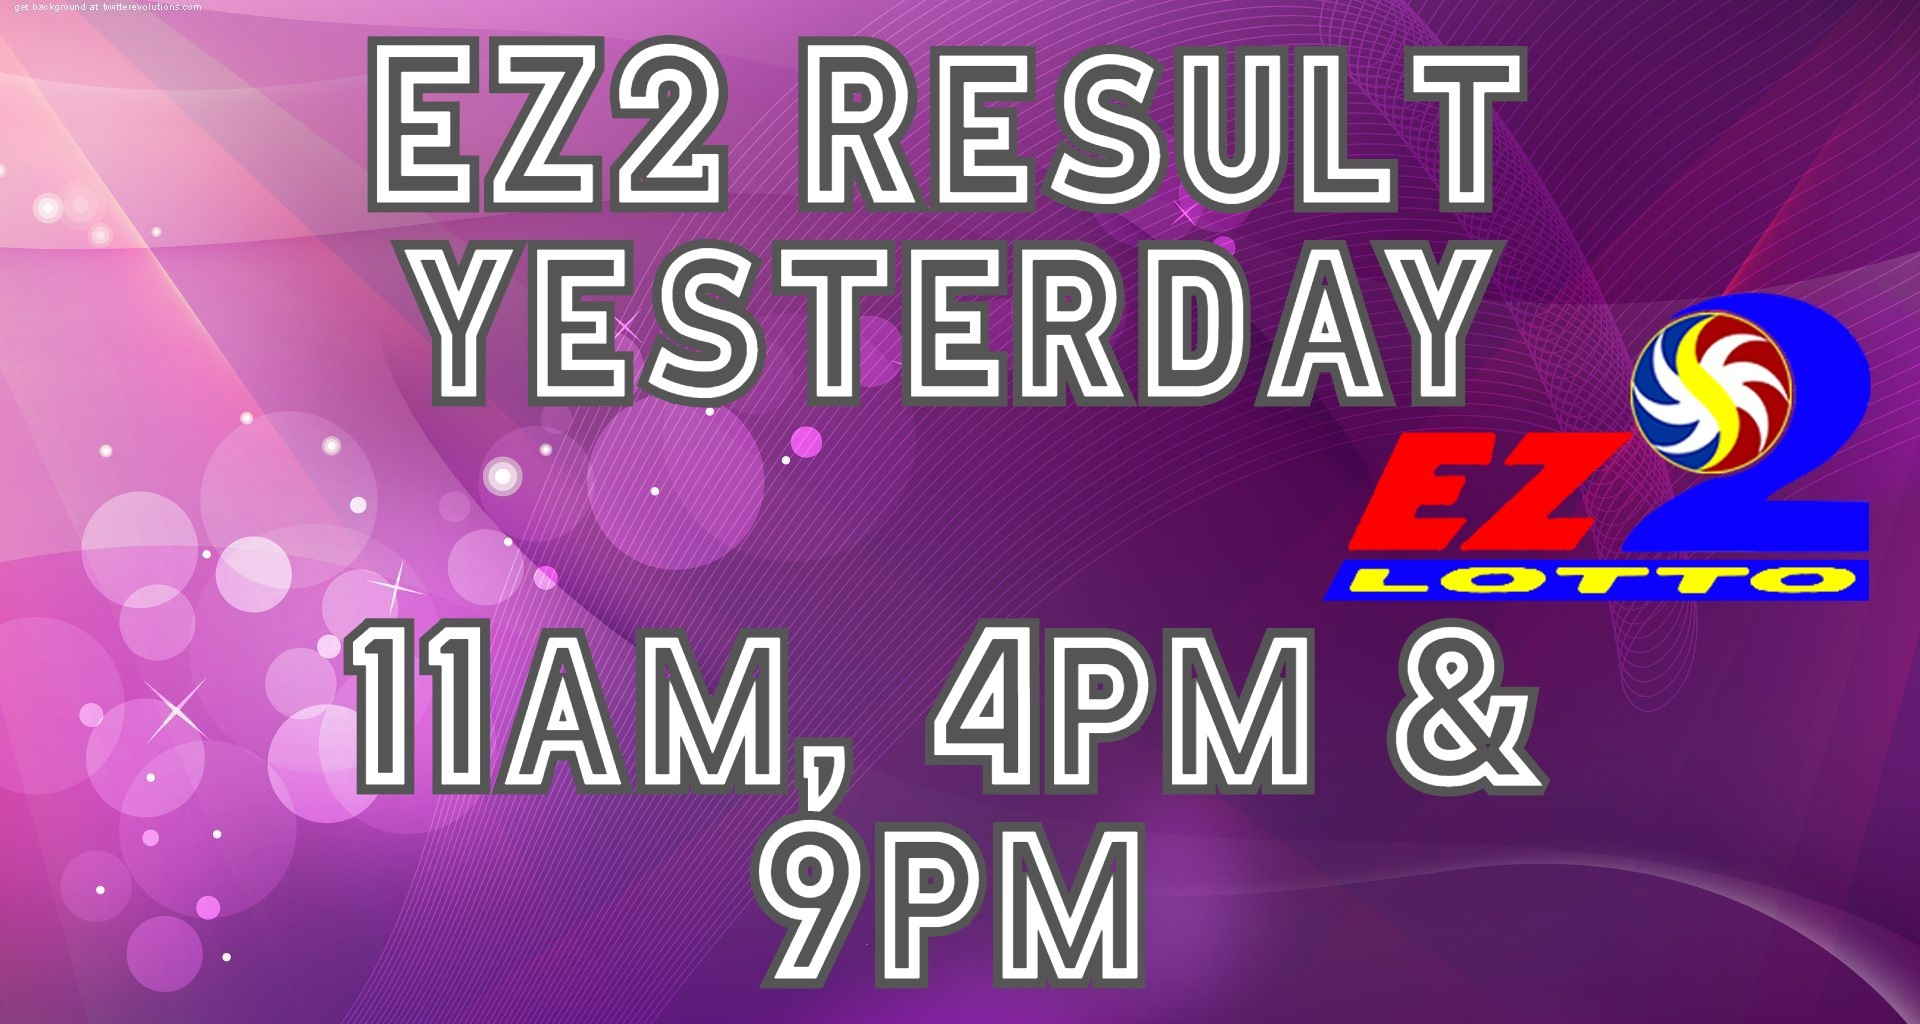 PCSO EZ2 Results Yesterday Aug 25, 2020 02PM 5PM 9PM